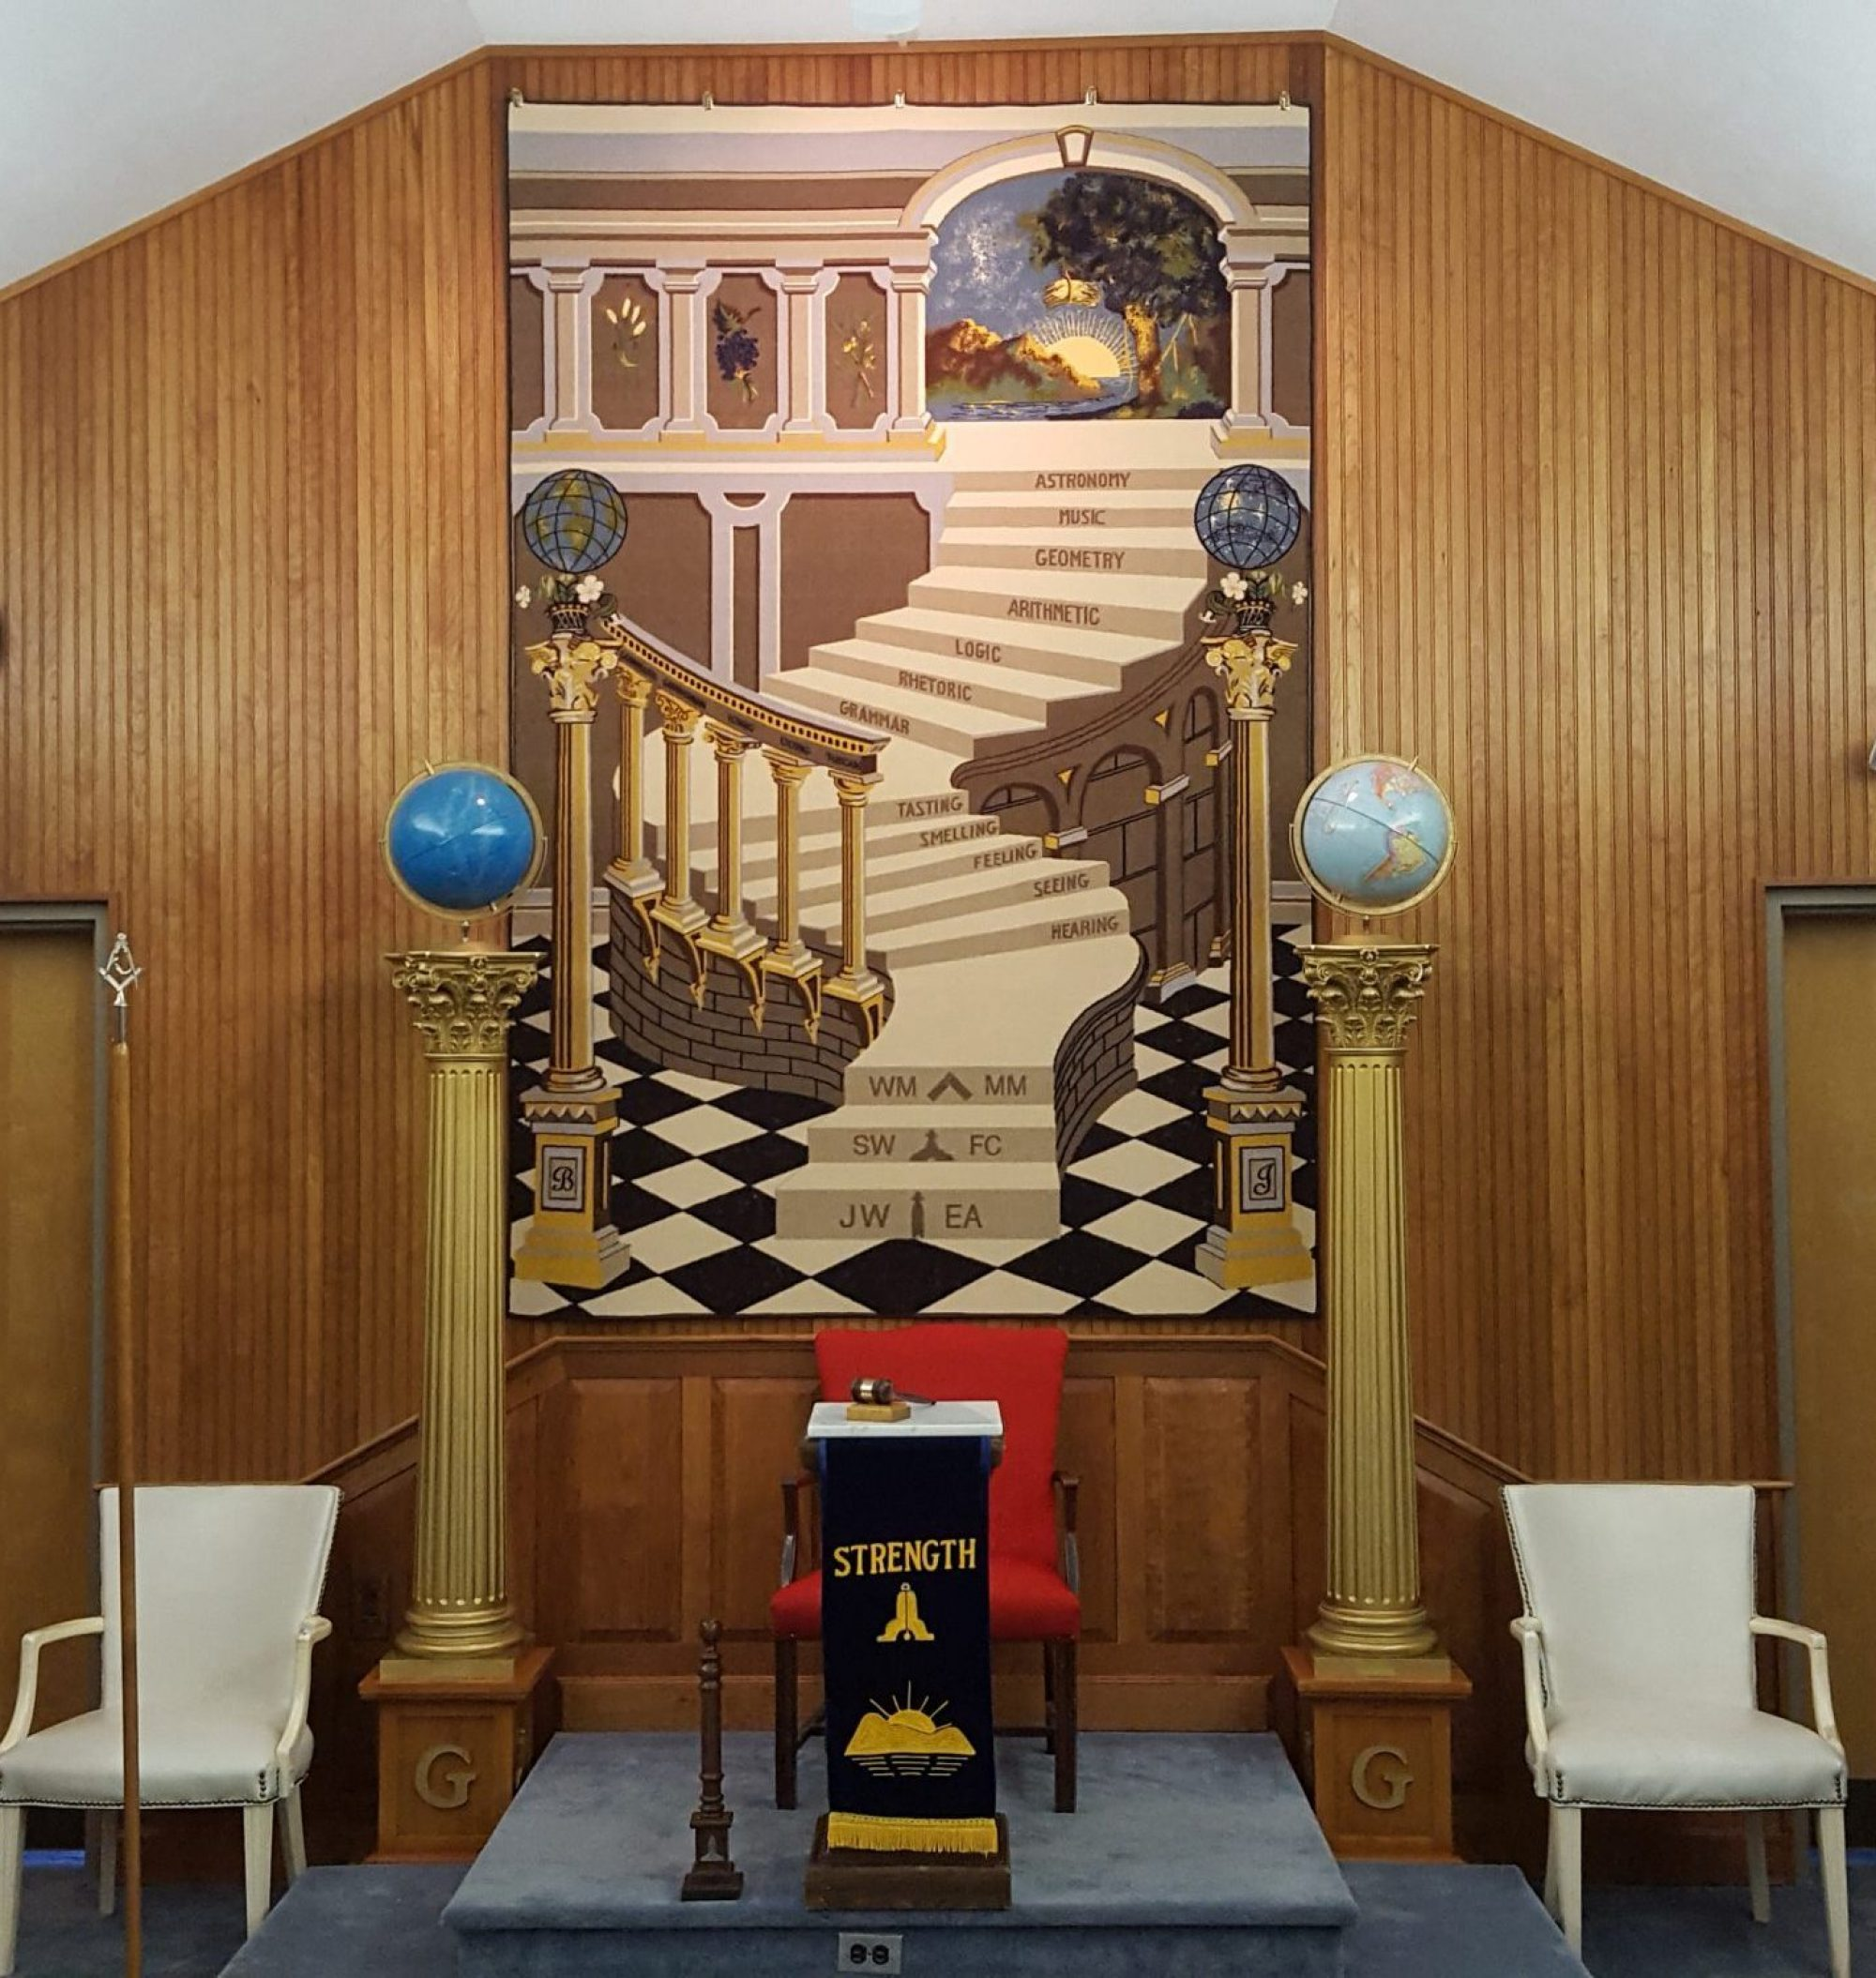 Oxford Masonic Lodge No. 67 F.&A.M.